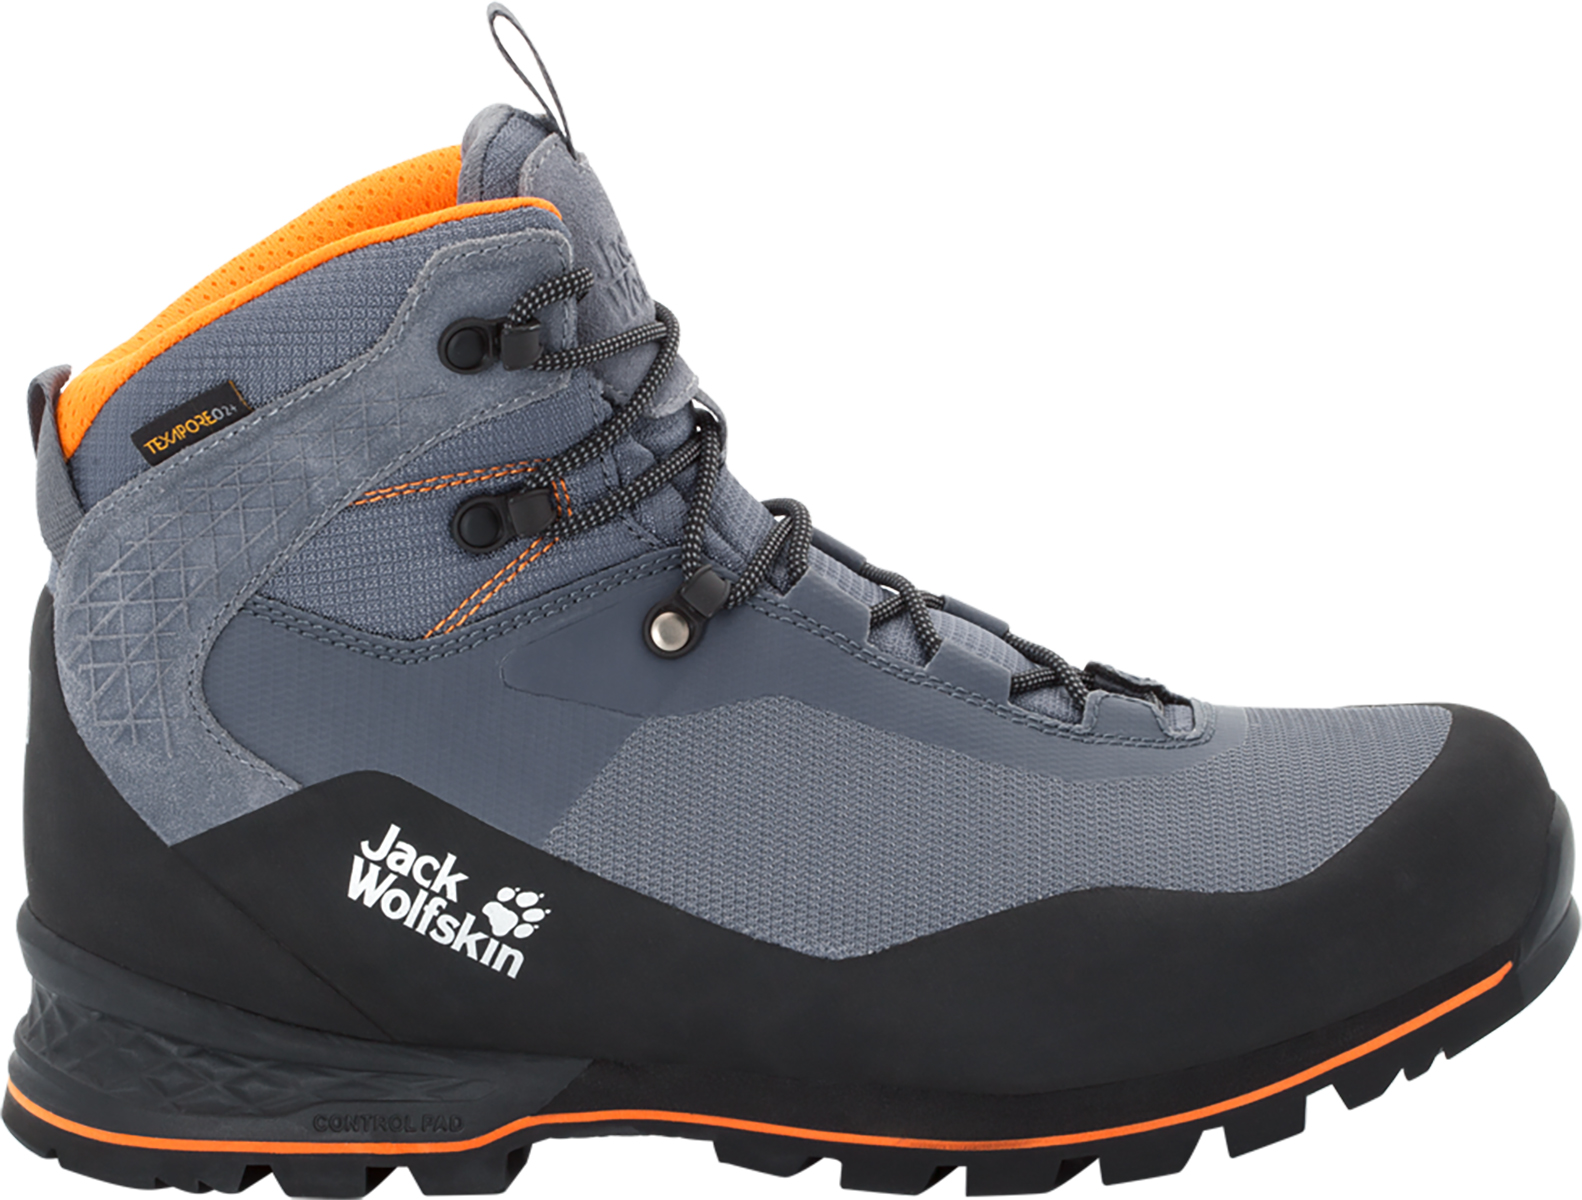 Jack Wolfskin Wilderness Lite Texapore Mid Shoes